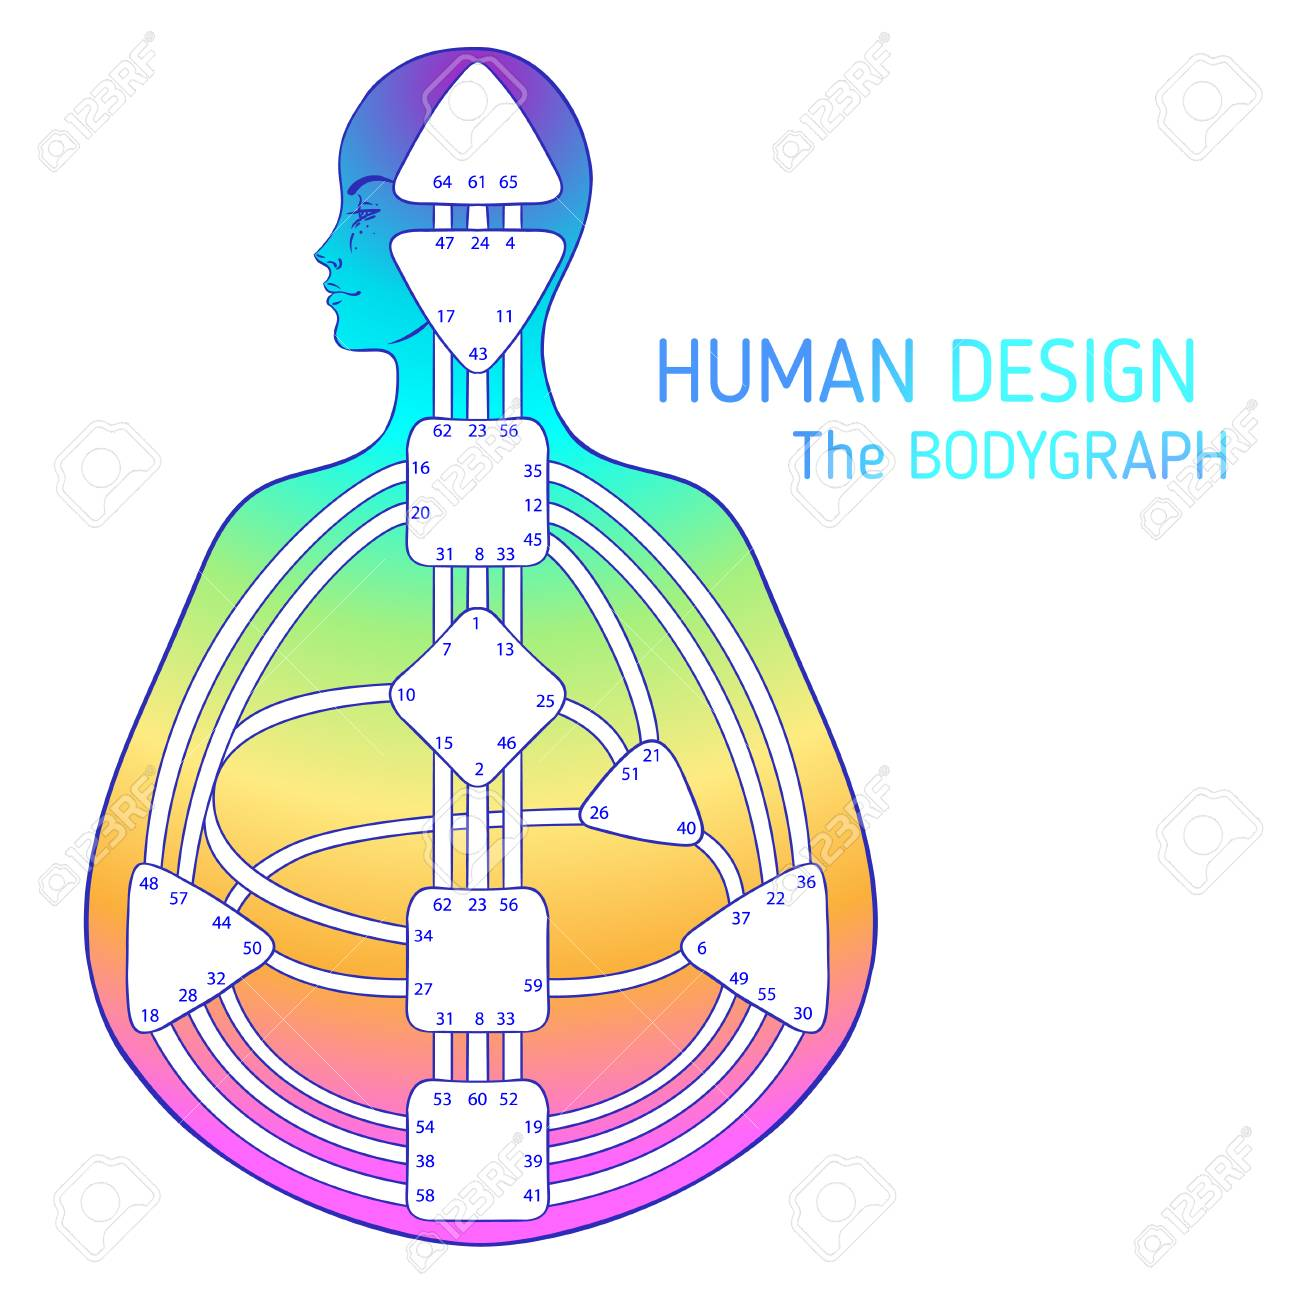 Human Design Bodygraph Chart Design Vector Isolated Illustration Royalty Free Cliparts Vectors And Stock Illustration Image 110332287